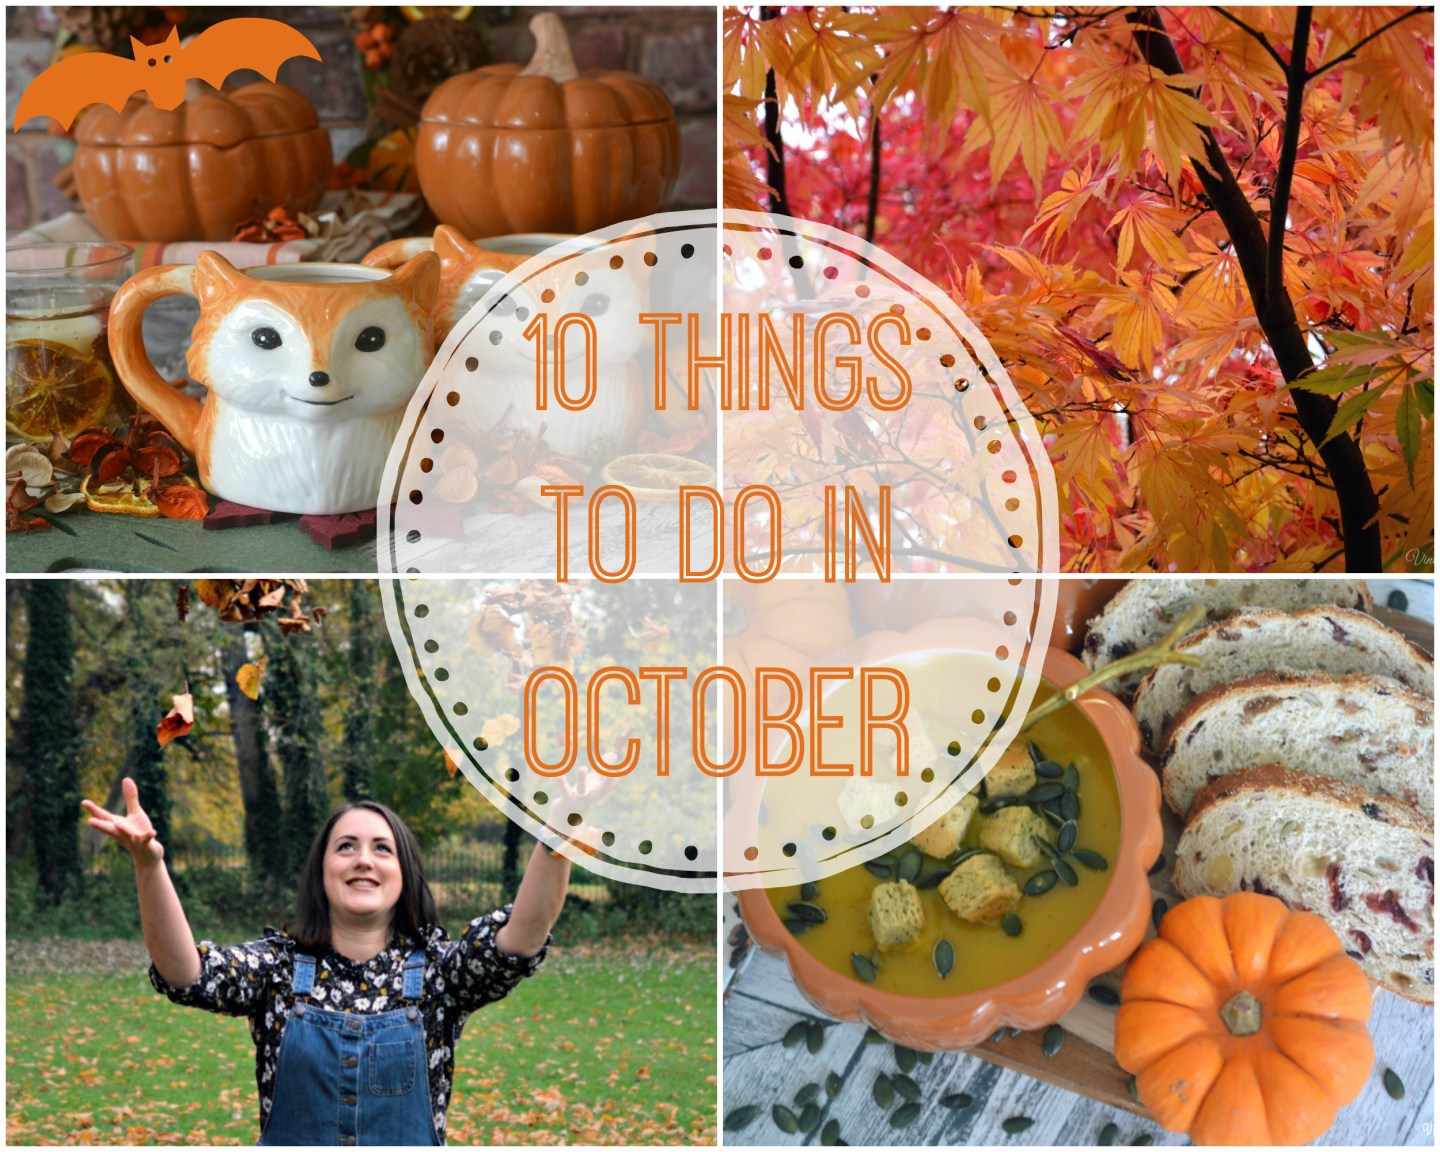 Autumn is Here! – 10 Things to do in October